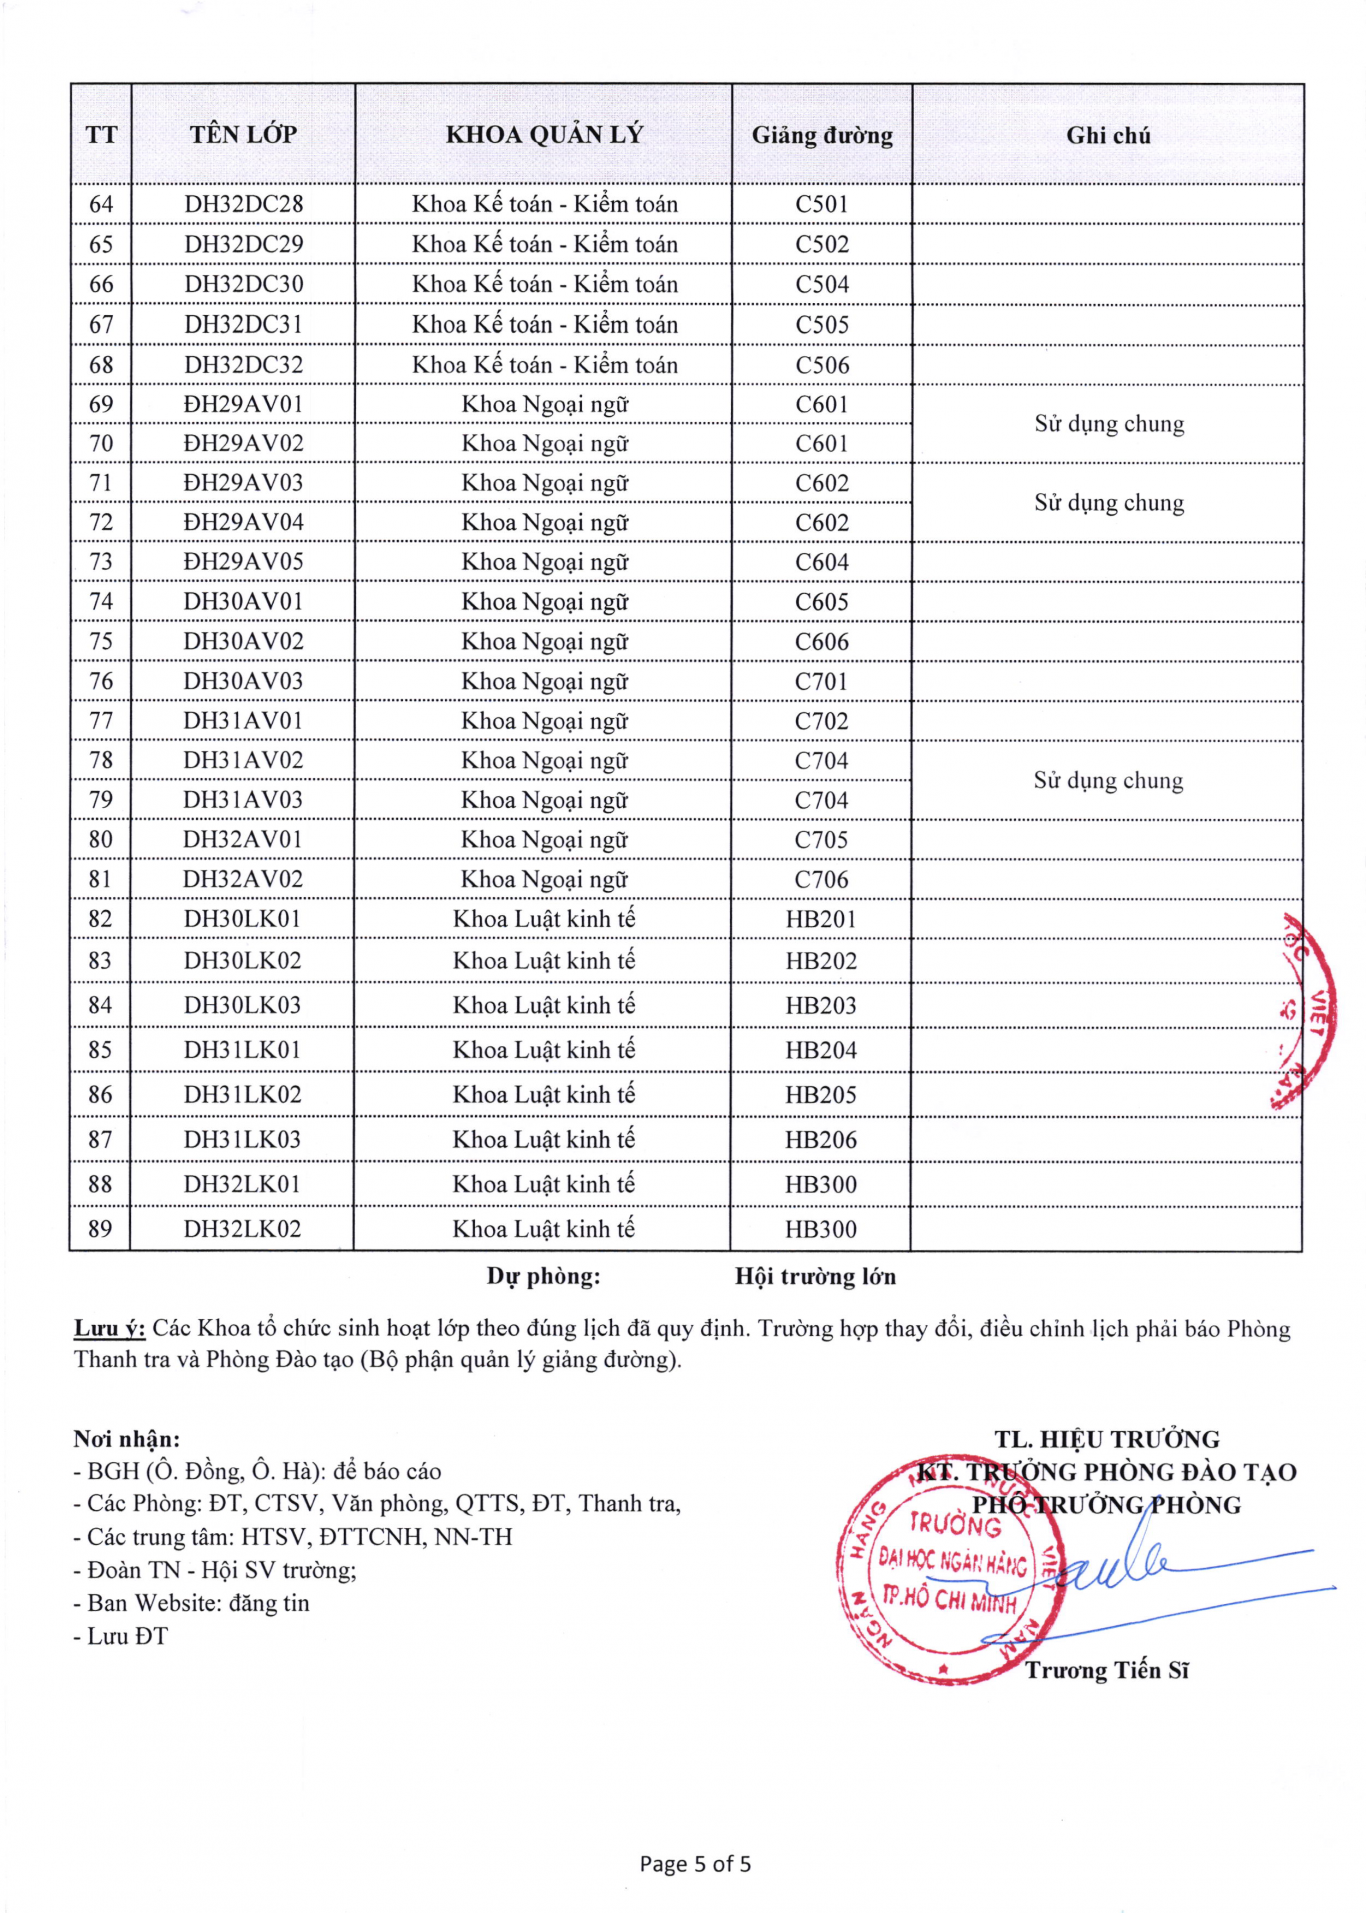 975-bo-tri-lich-giang-duong-sinh-hoat-lop-dinh-ky-dh-cdcq-dot-20005